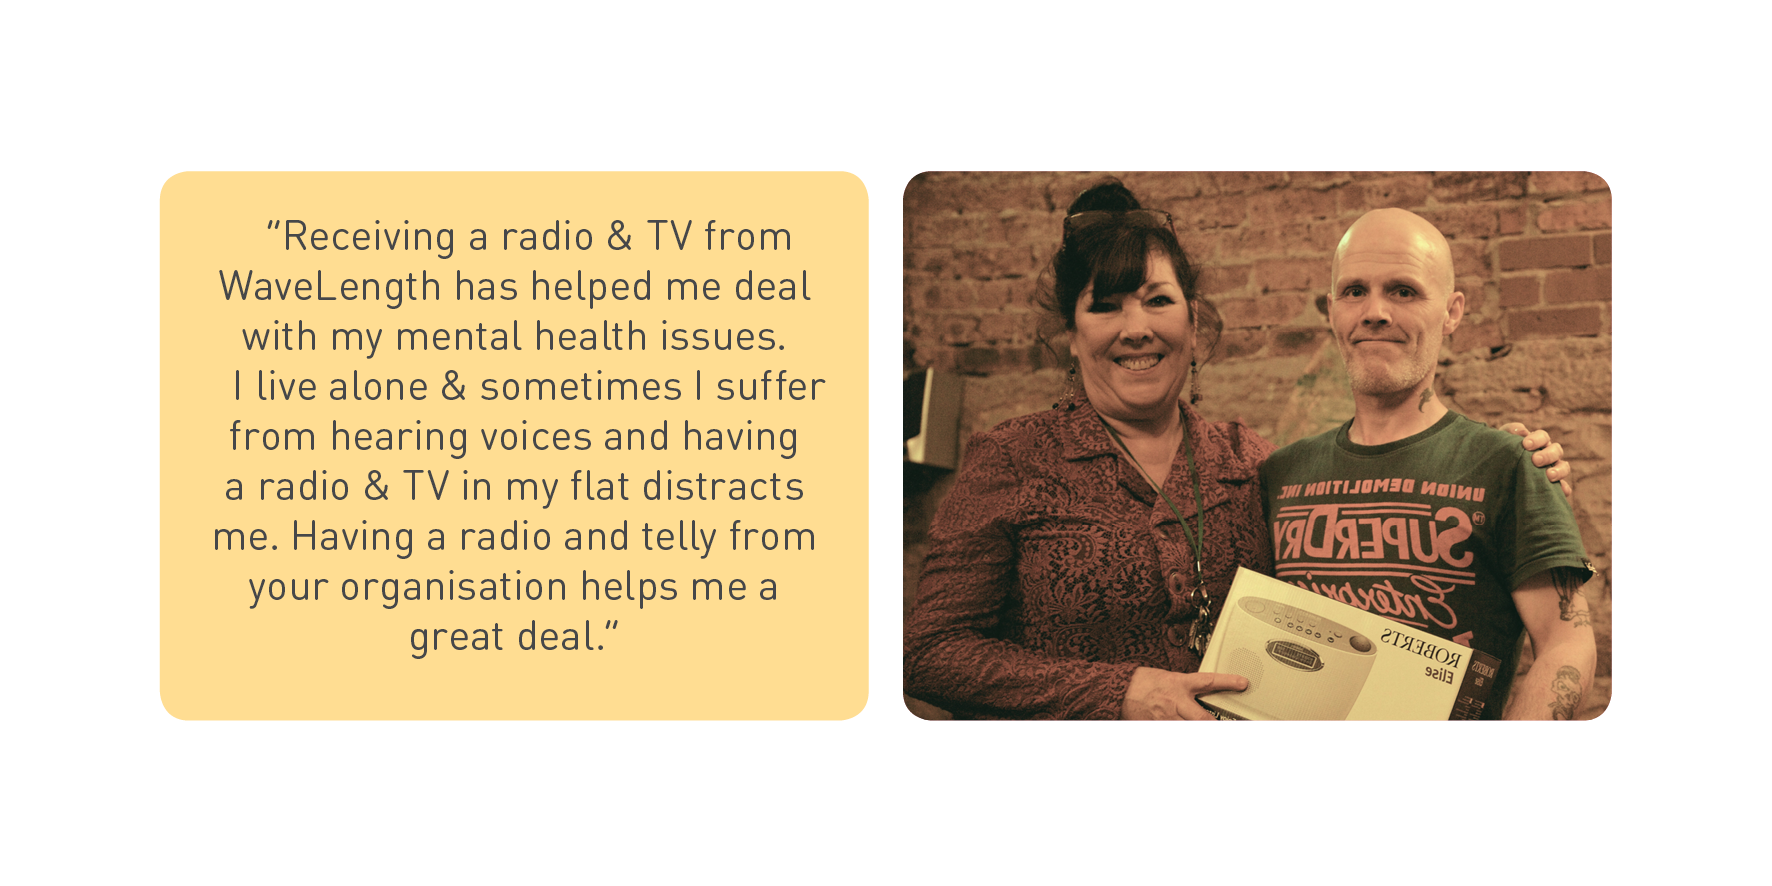 """Receiving a radio & TV from WaveLength has helped me deal with my mental health issues. I live alone & sometimes I suffer from hearing voices and having a radio & TV in my flat distracts me. Having a radio and telly from your organisation helps me a great deal."""